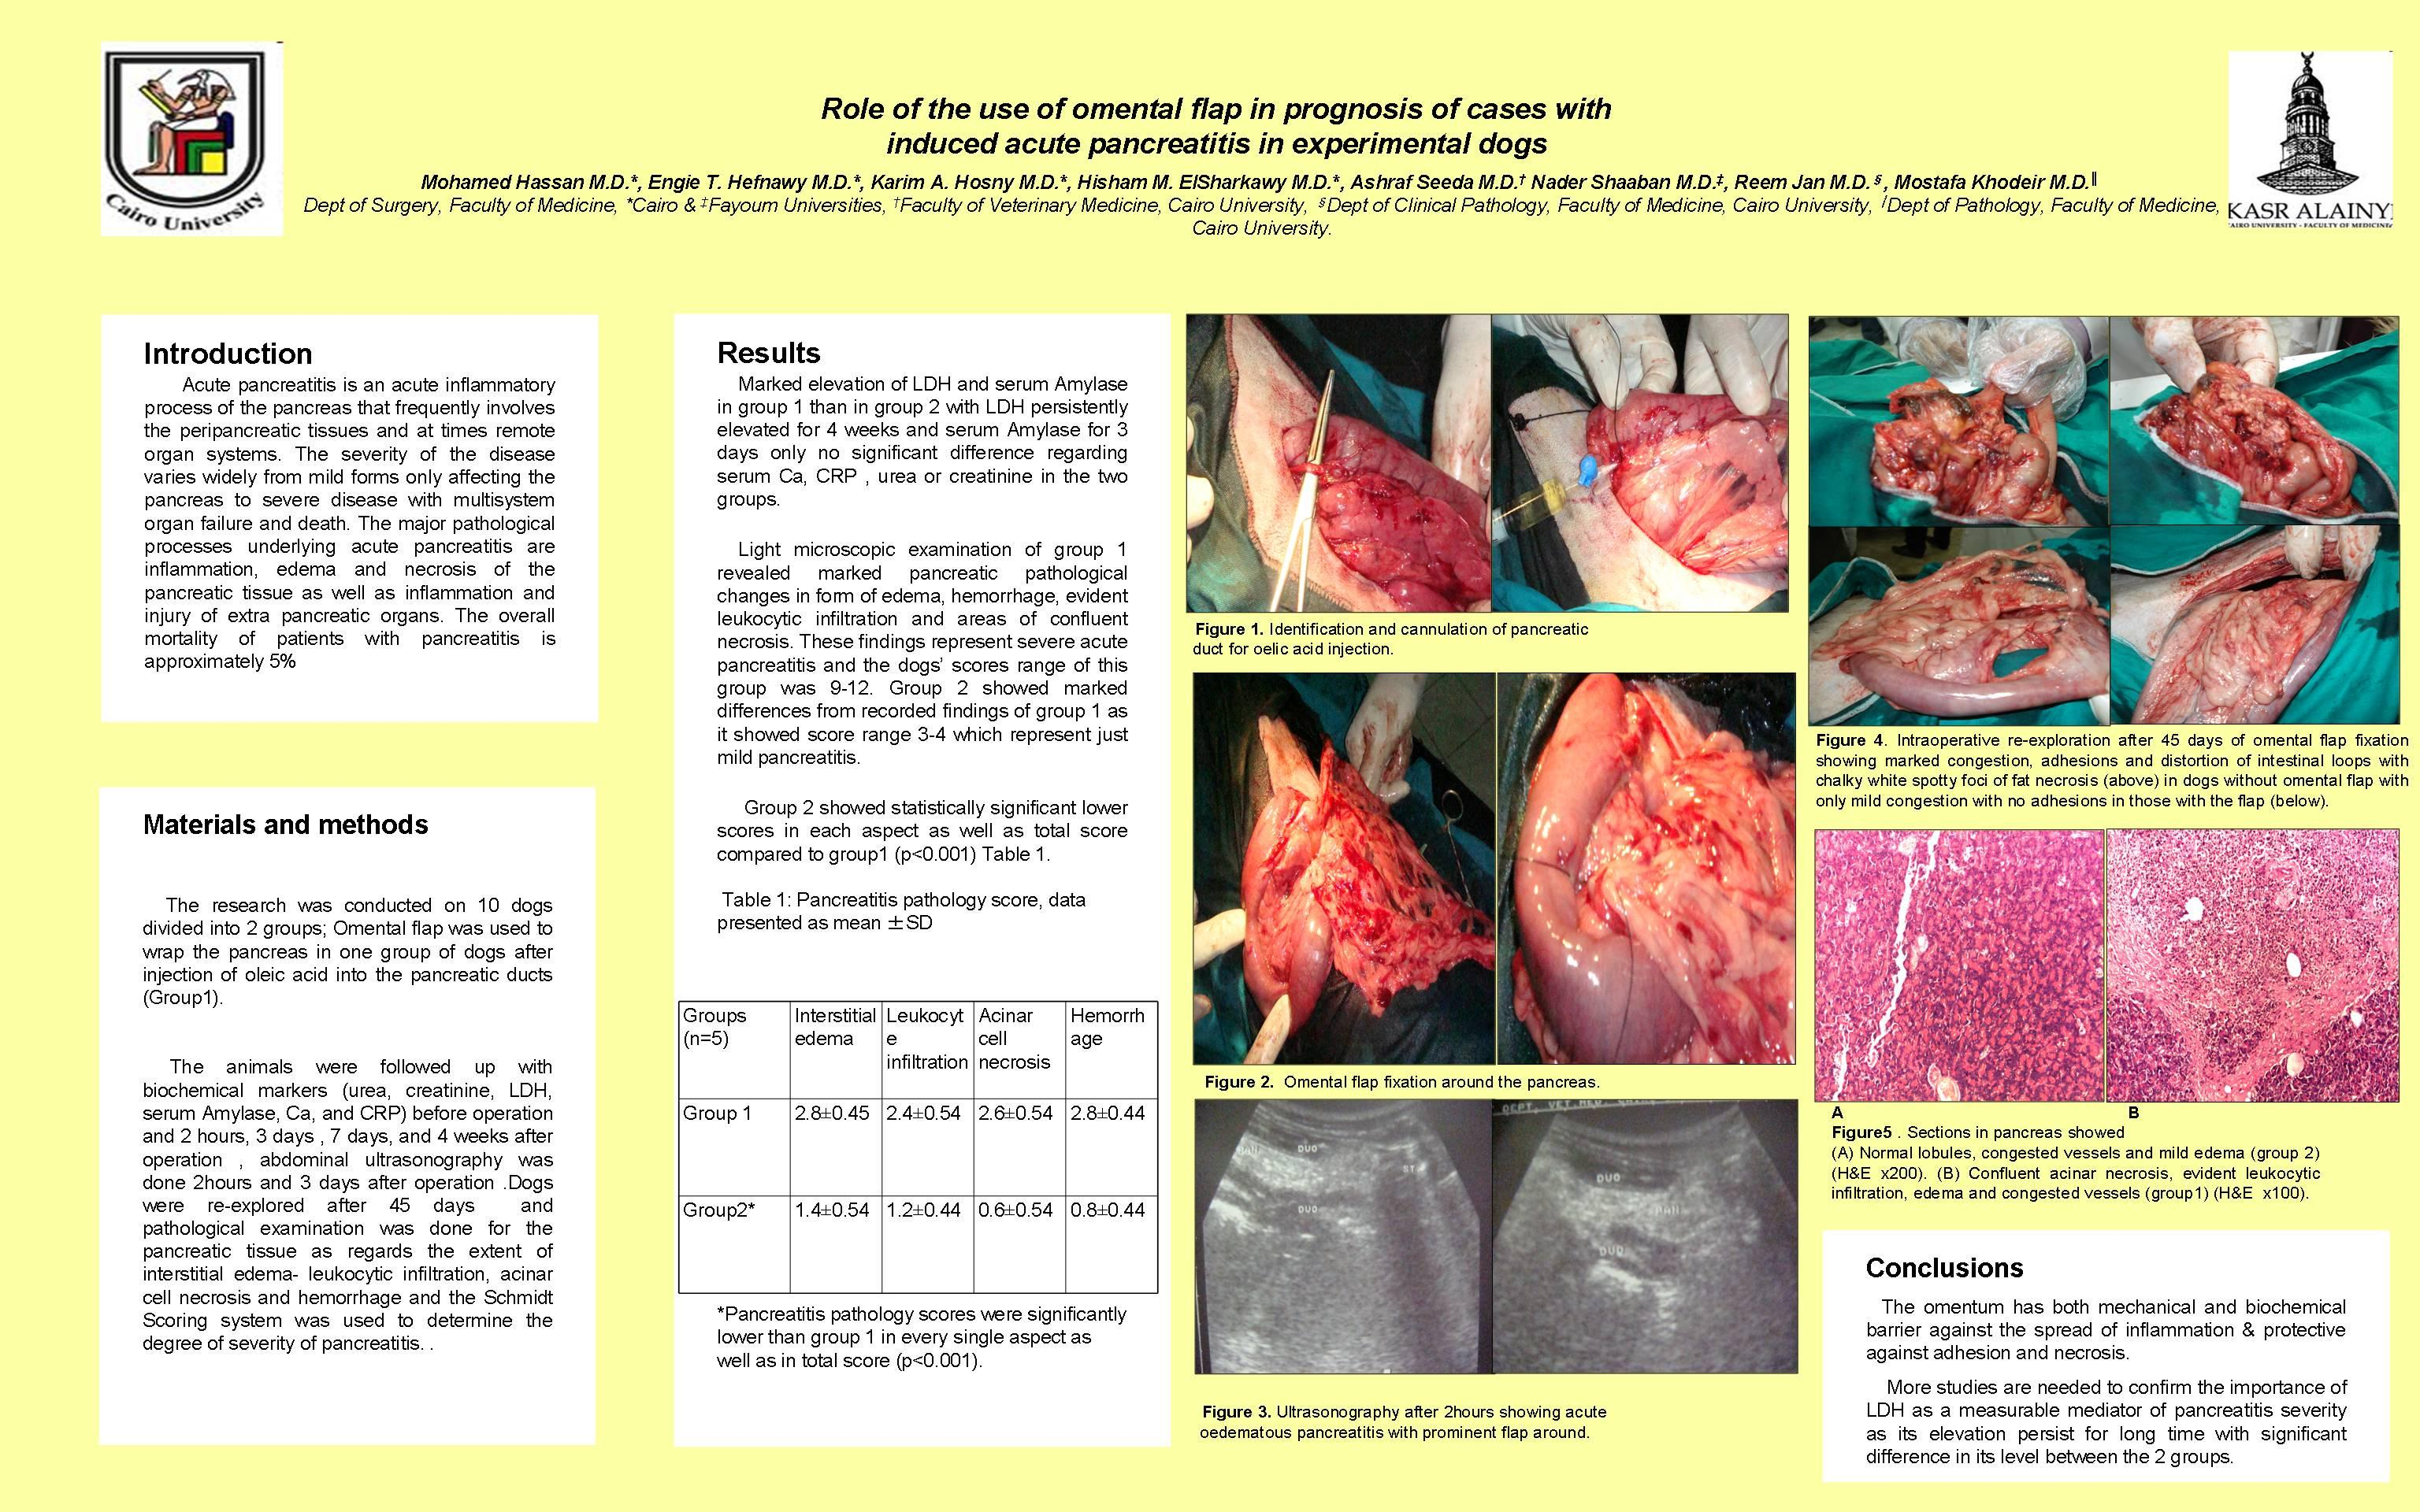 eposter template - role of the use of omental flap in prognosis of cases with